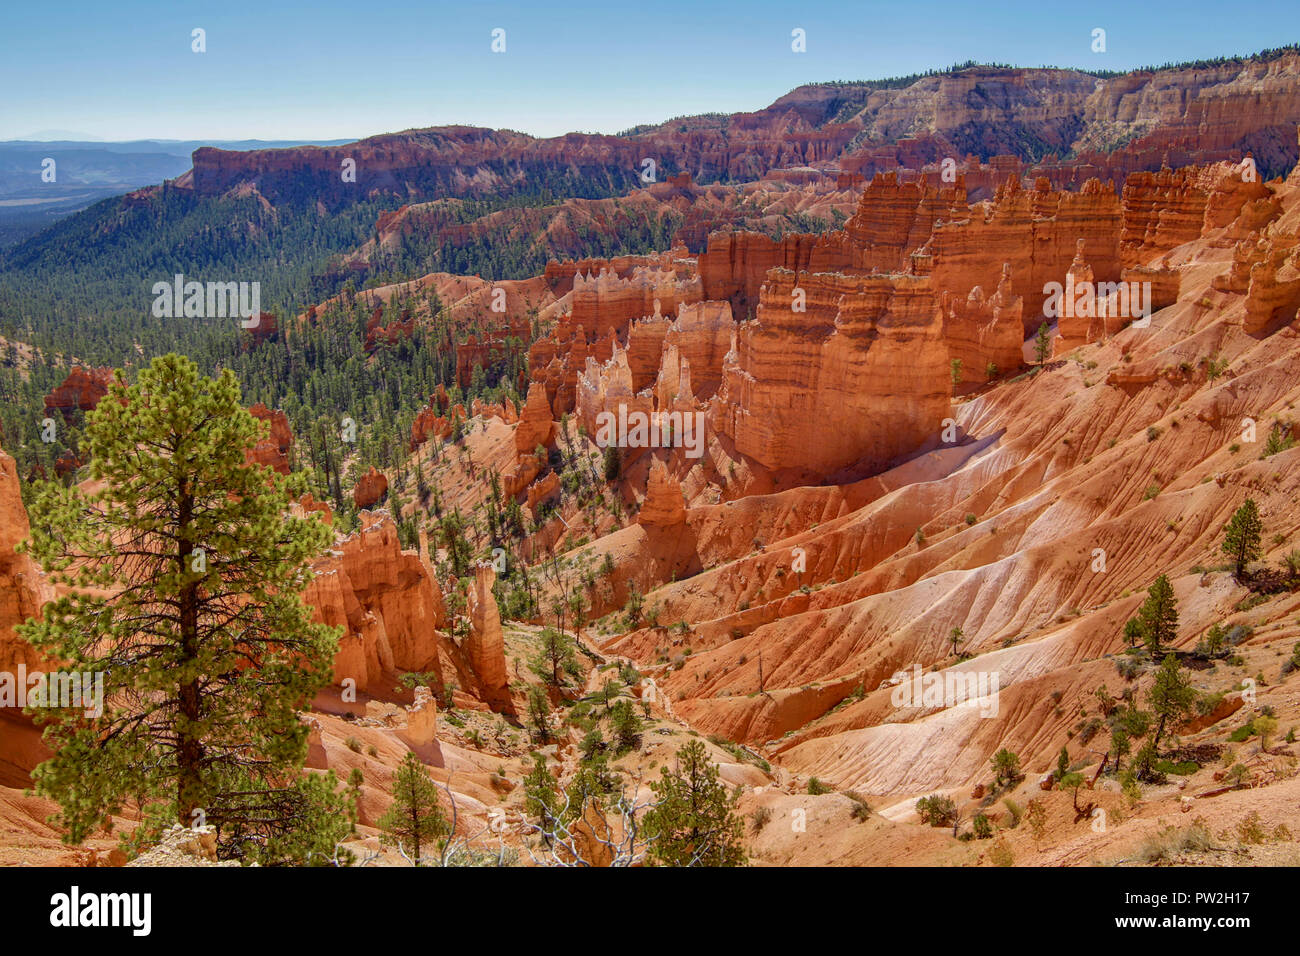 Bryce Canyon National park in Utah - Stock Image